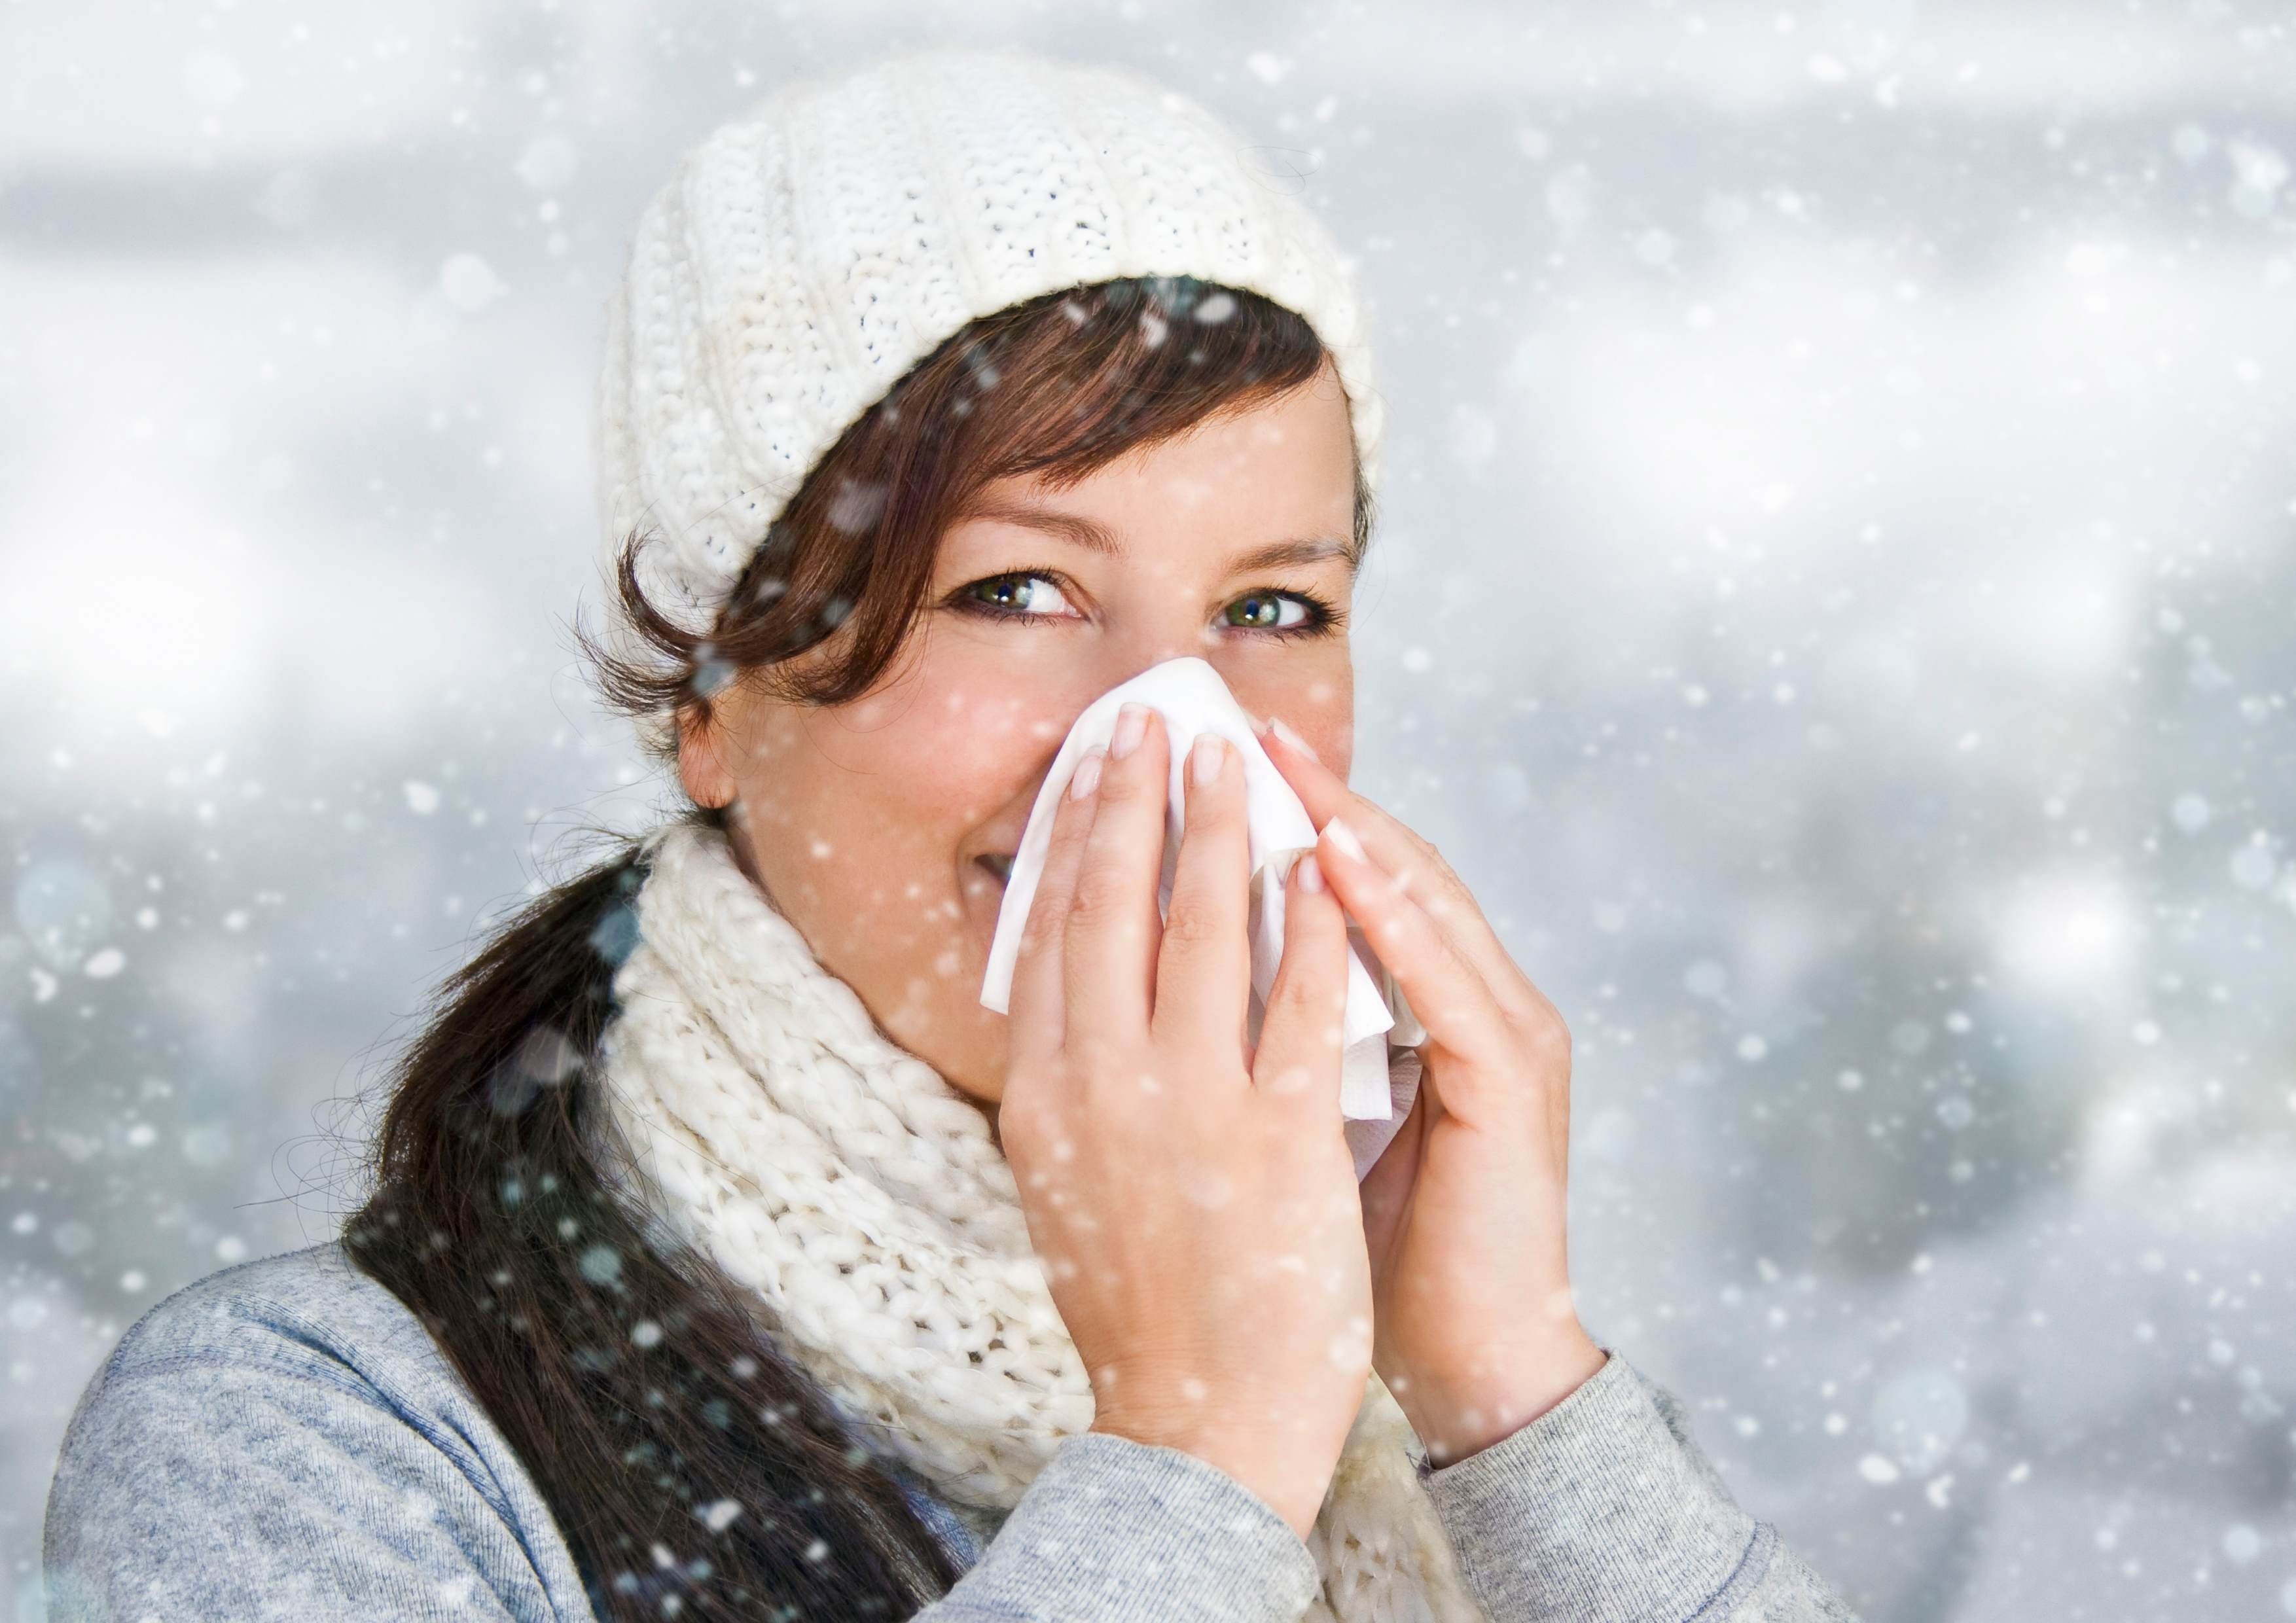 A woman blowing her nose outside in the snow